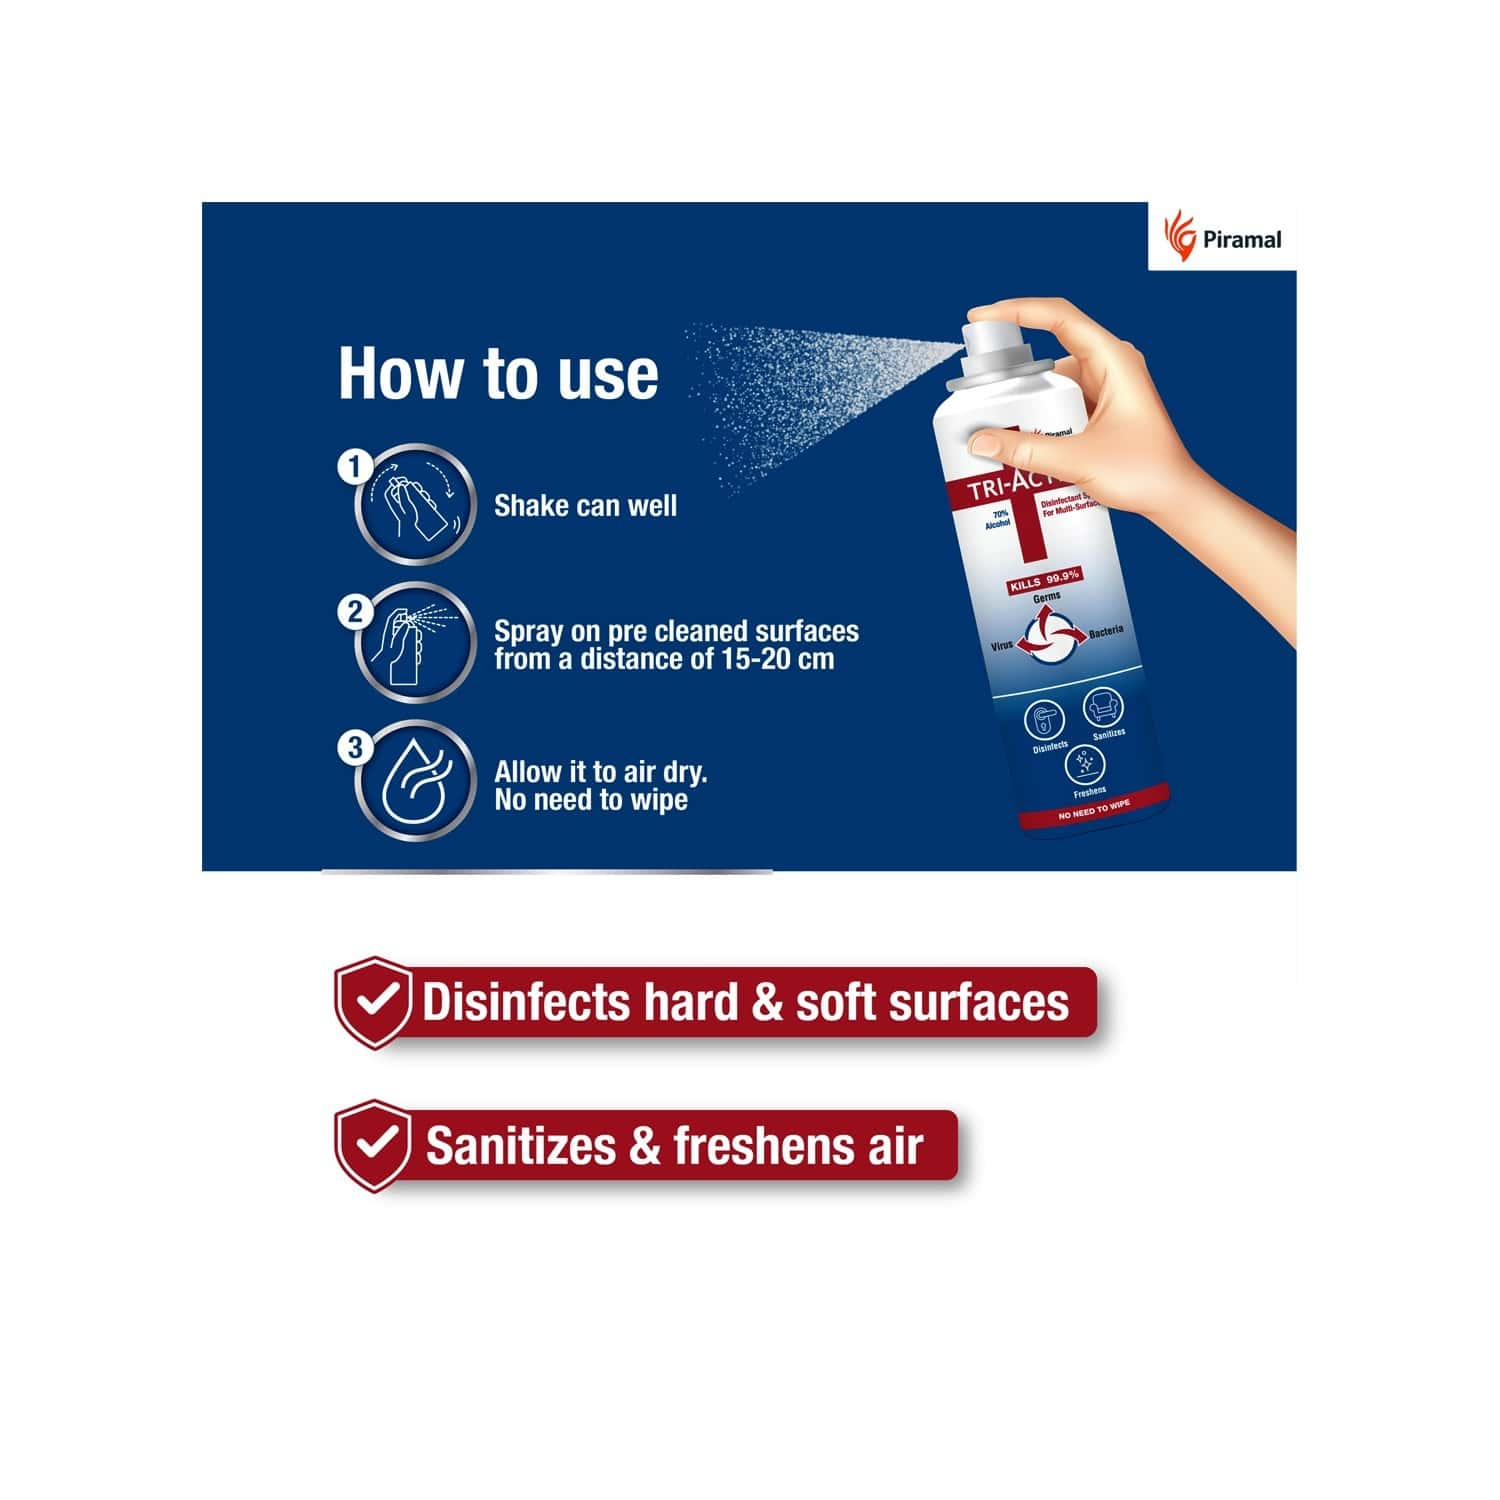 Tri-activ Disinfectant Spray For Multi-surfaces 70% Alcohol Based - 100ml